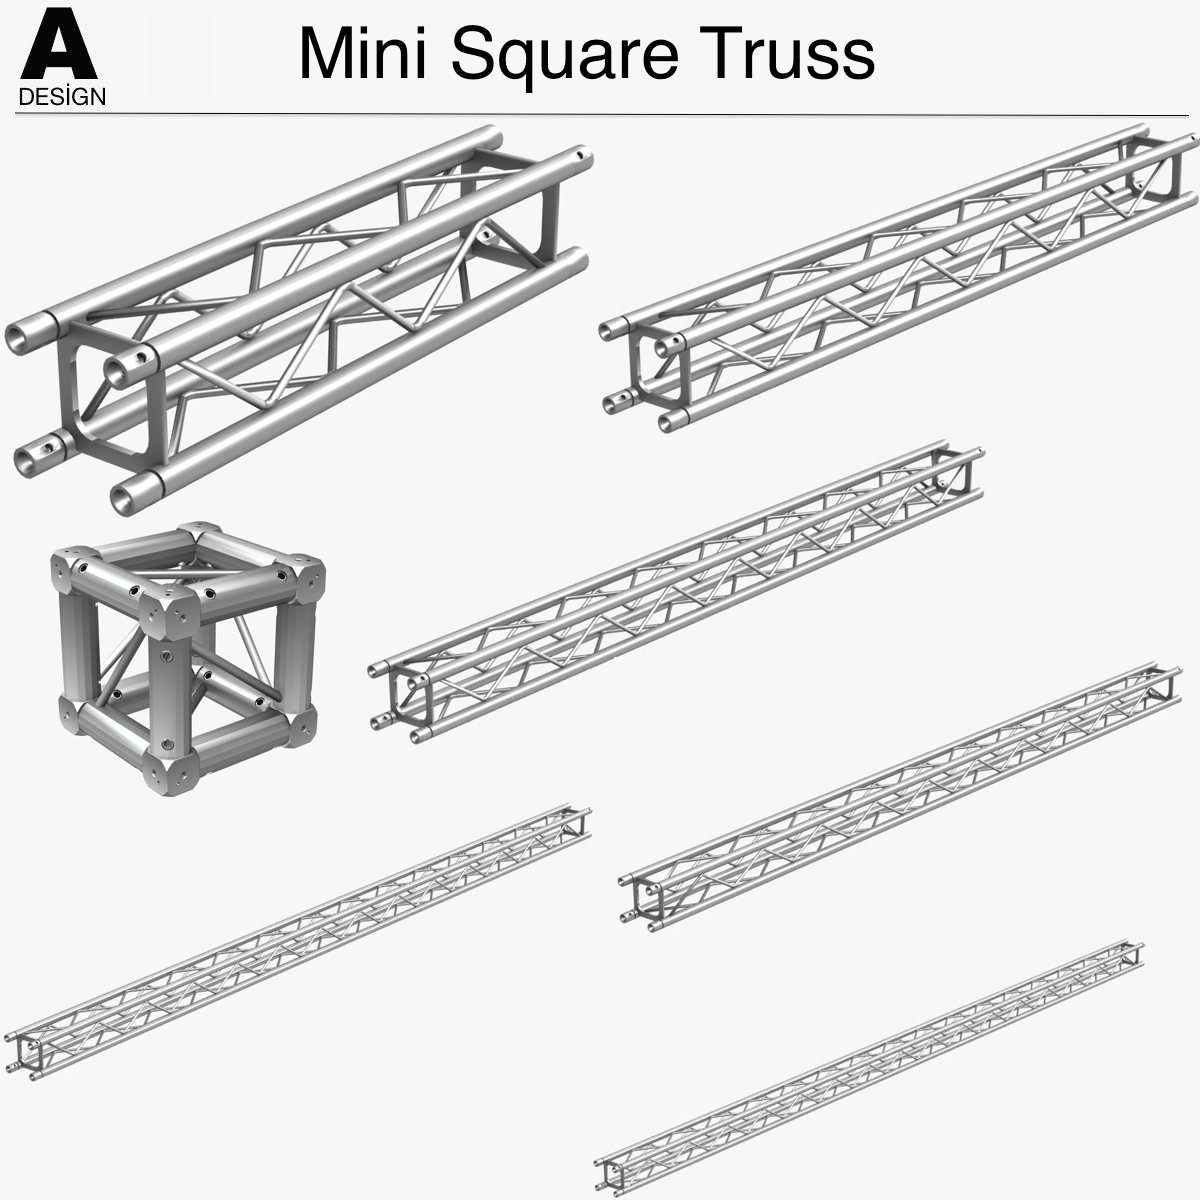 Mini Square Truss (Collection 7 Modular Pieces)